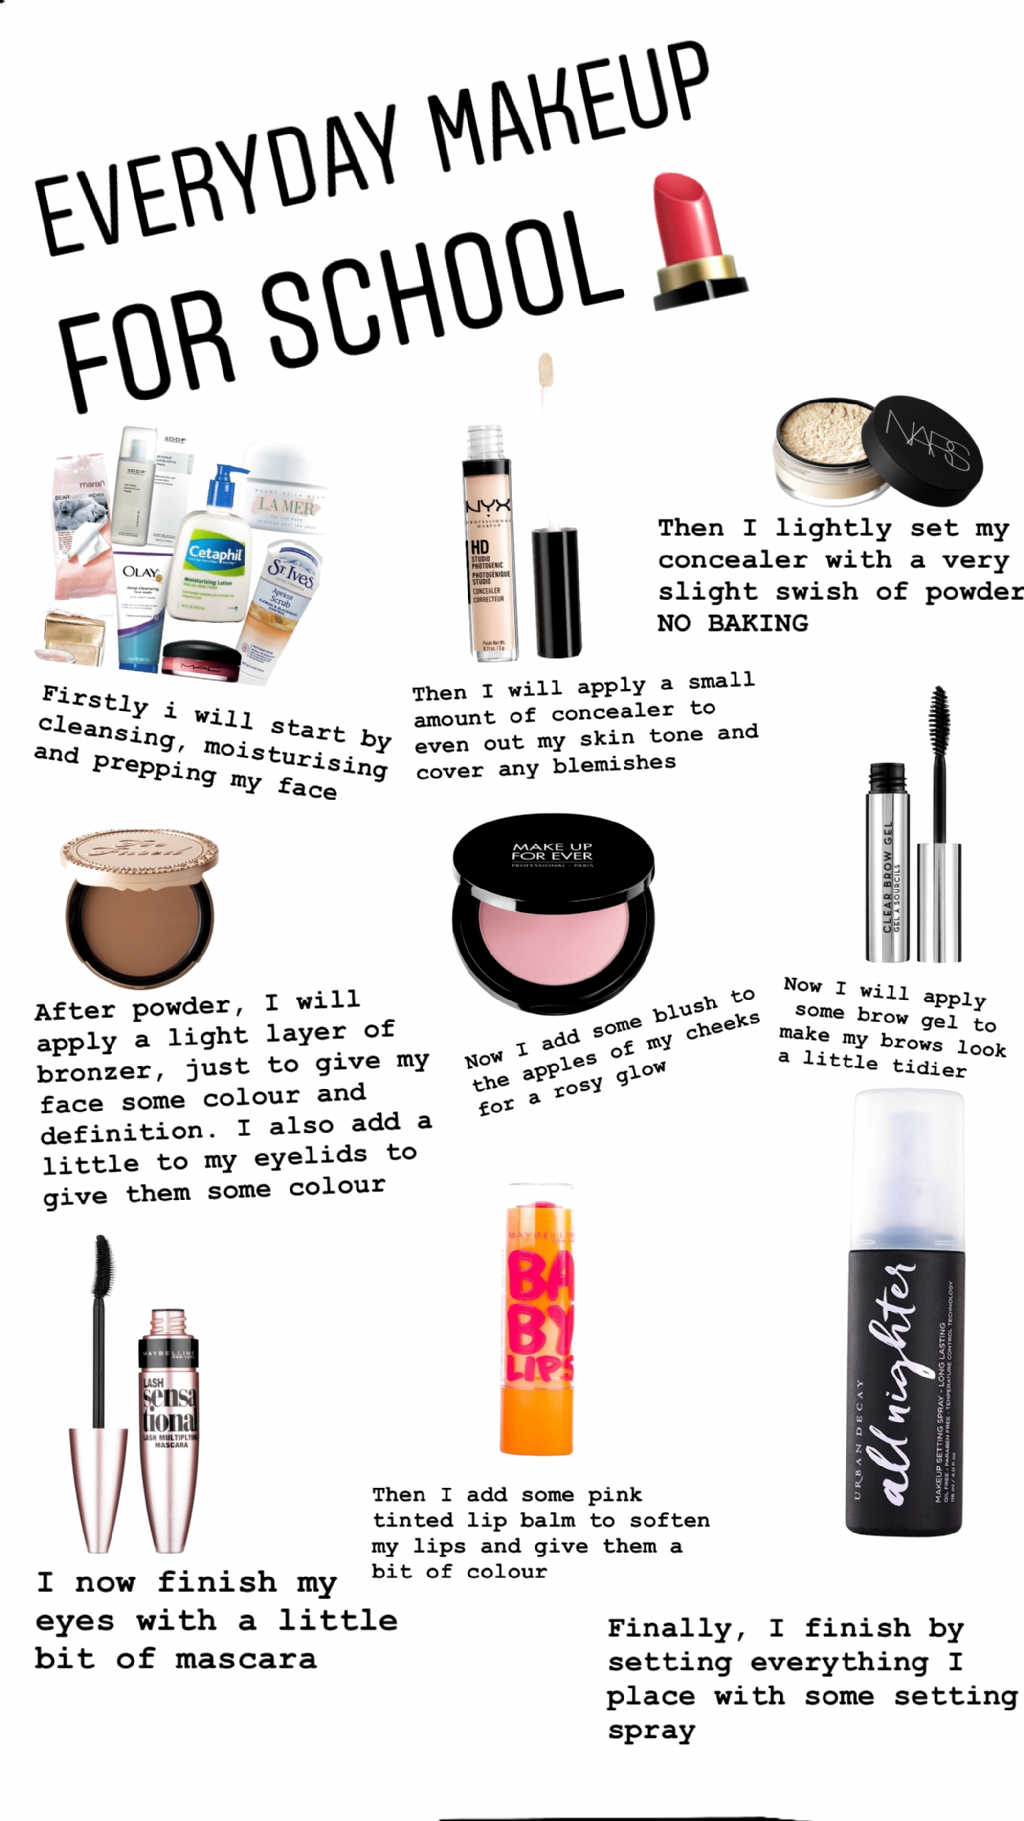 Everyday skincare and makeup routine for teens and adults